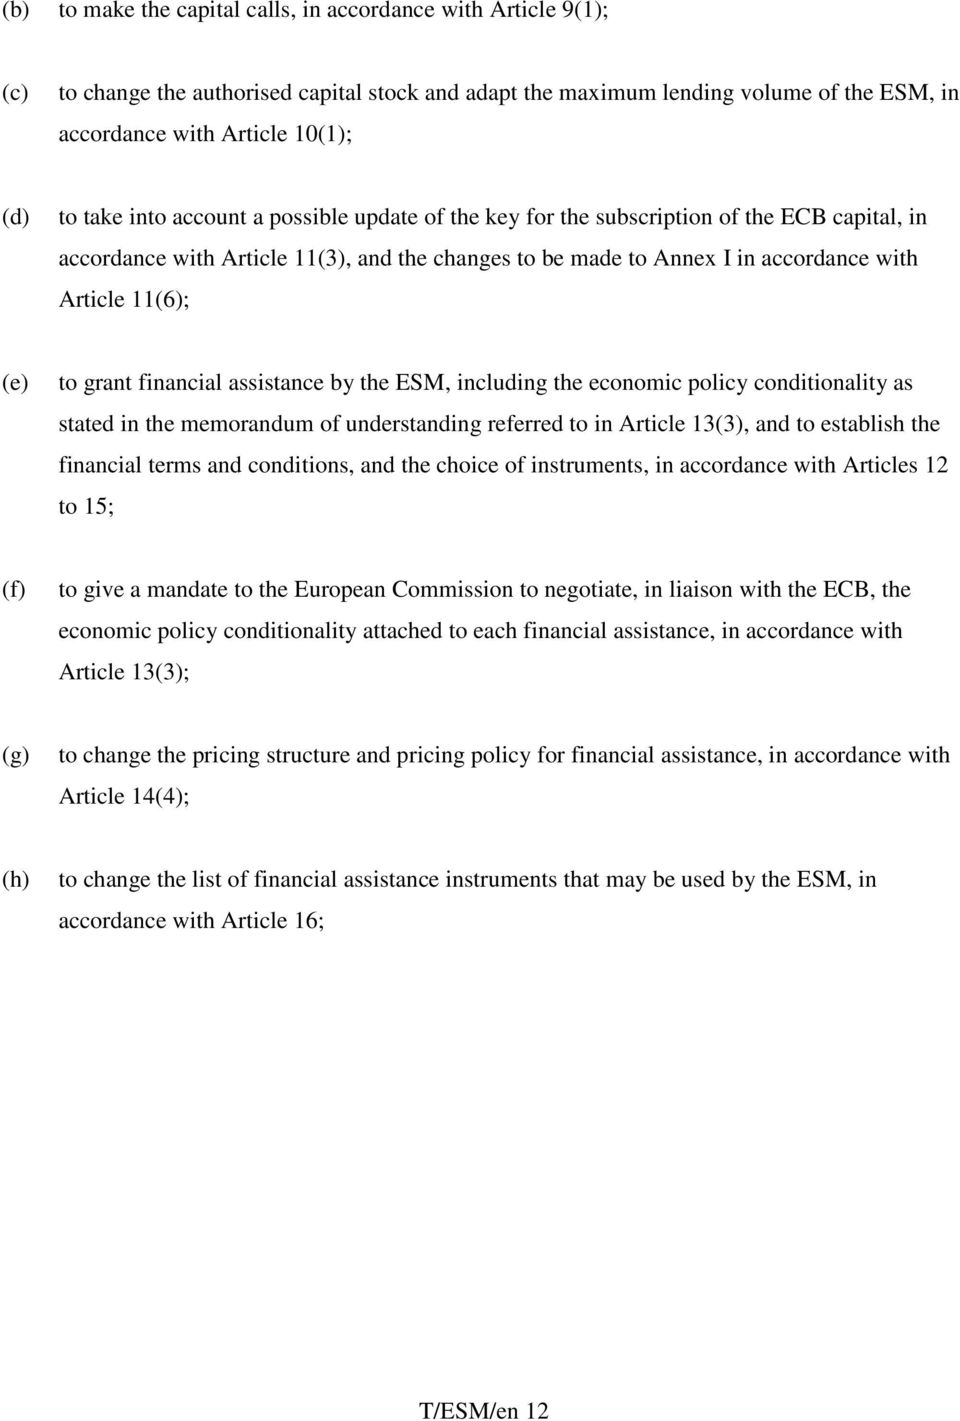 to grant financial assistance by the ESM, including the economic policy conditionality as stated in the memorandum of understanding referred to in Article 13(3), and to establish the financial terms